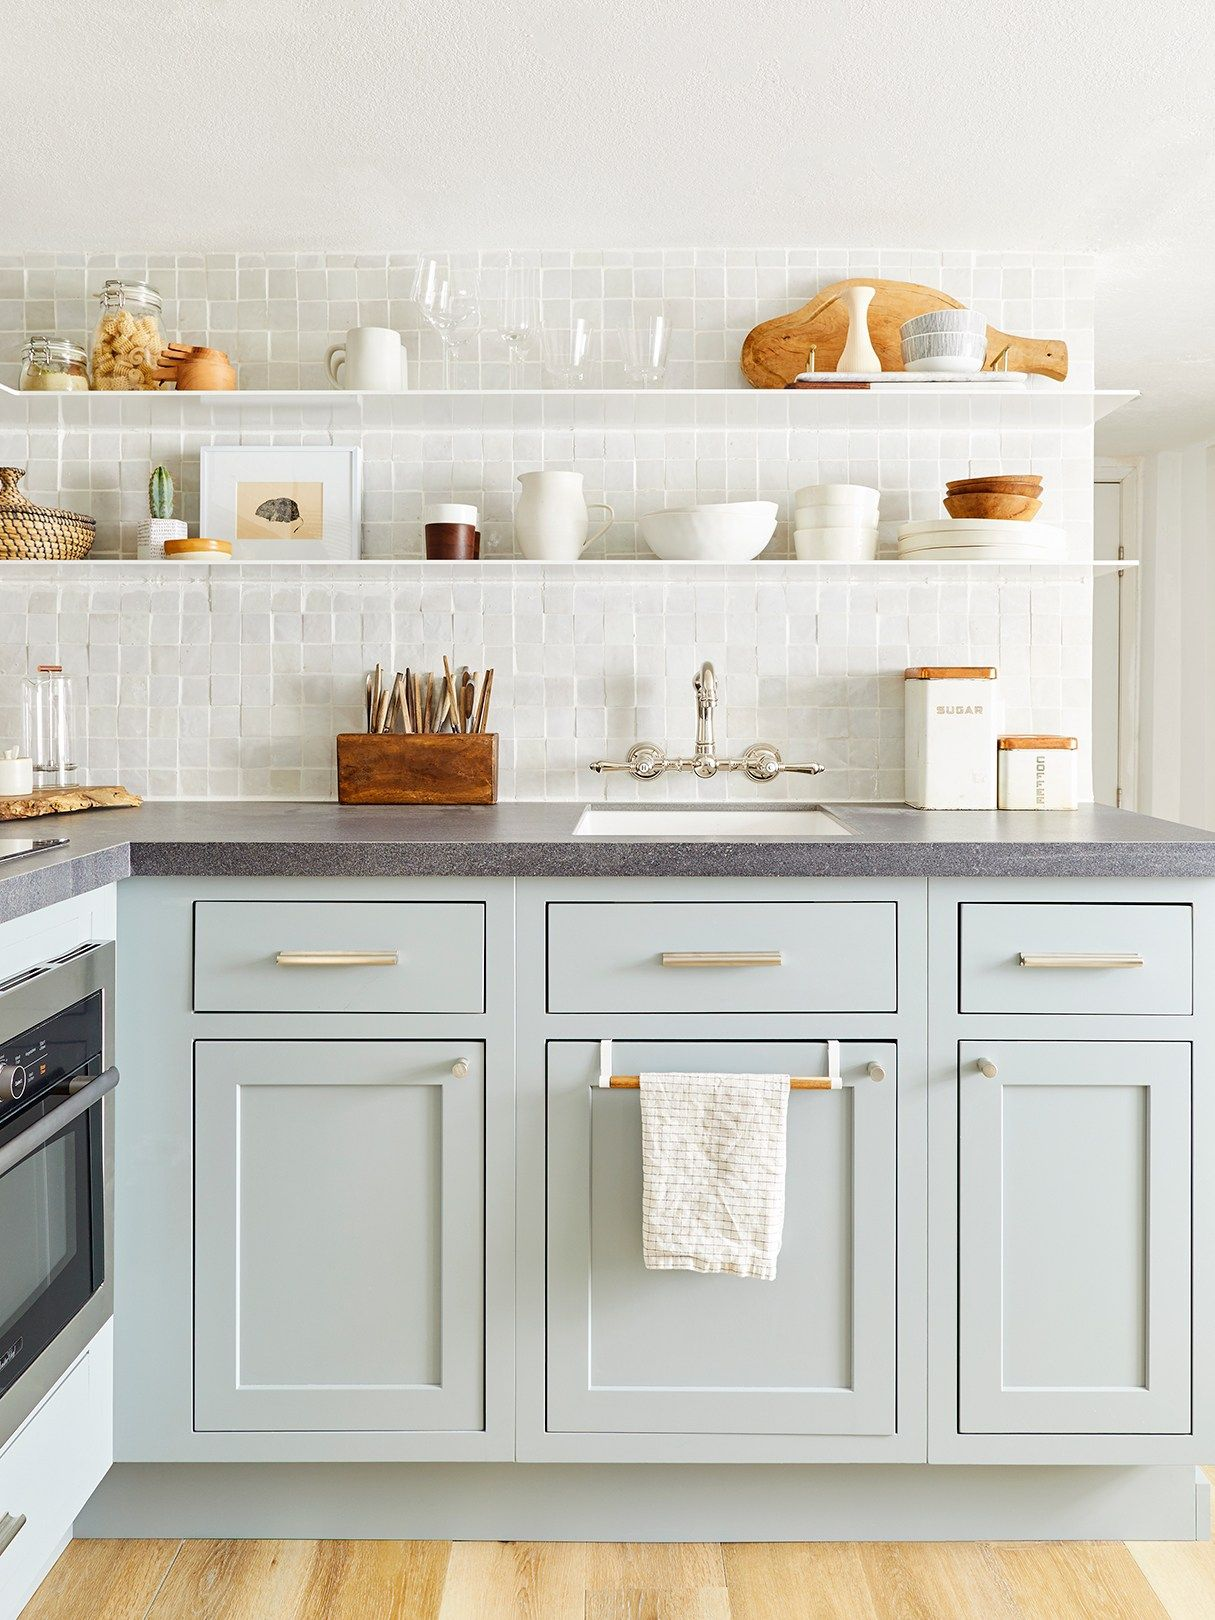 8 Dated Renovation Trends We Re Ready To Say Goodbye To Kitchen